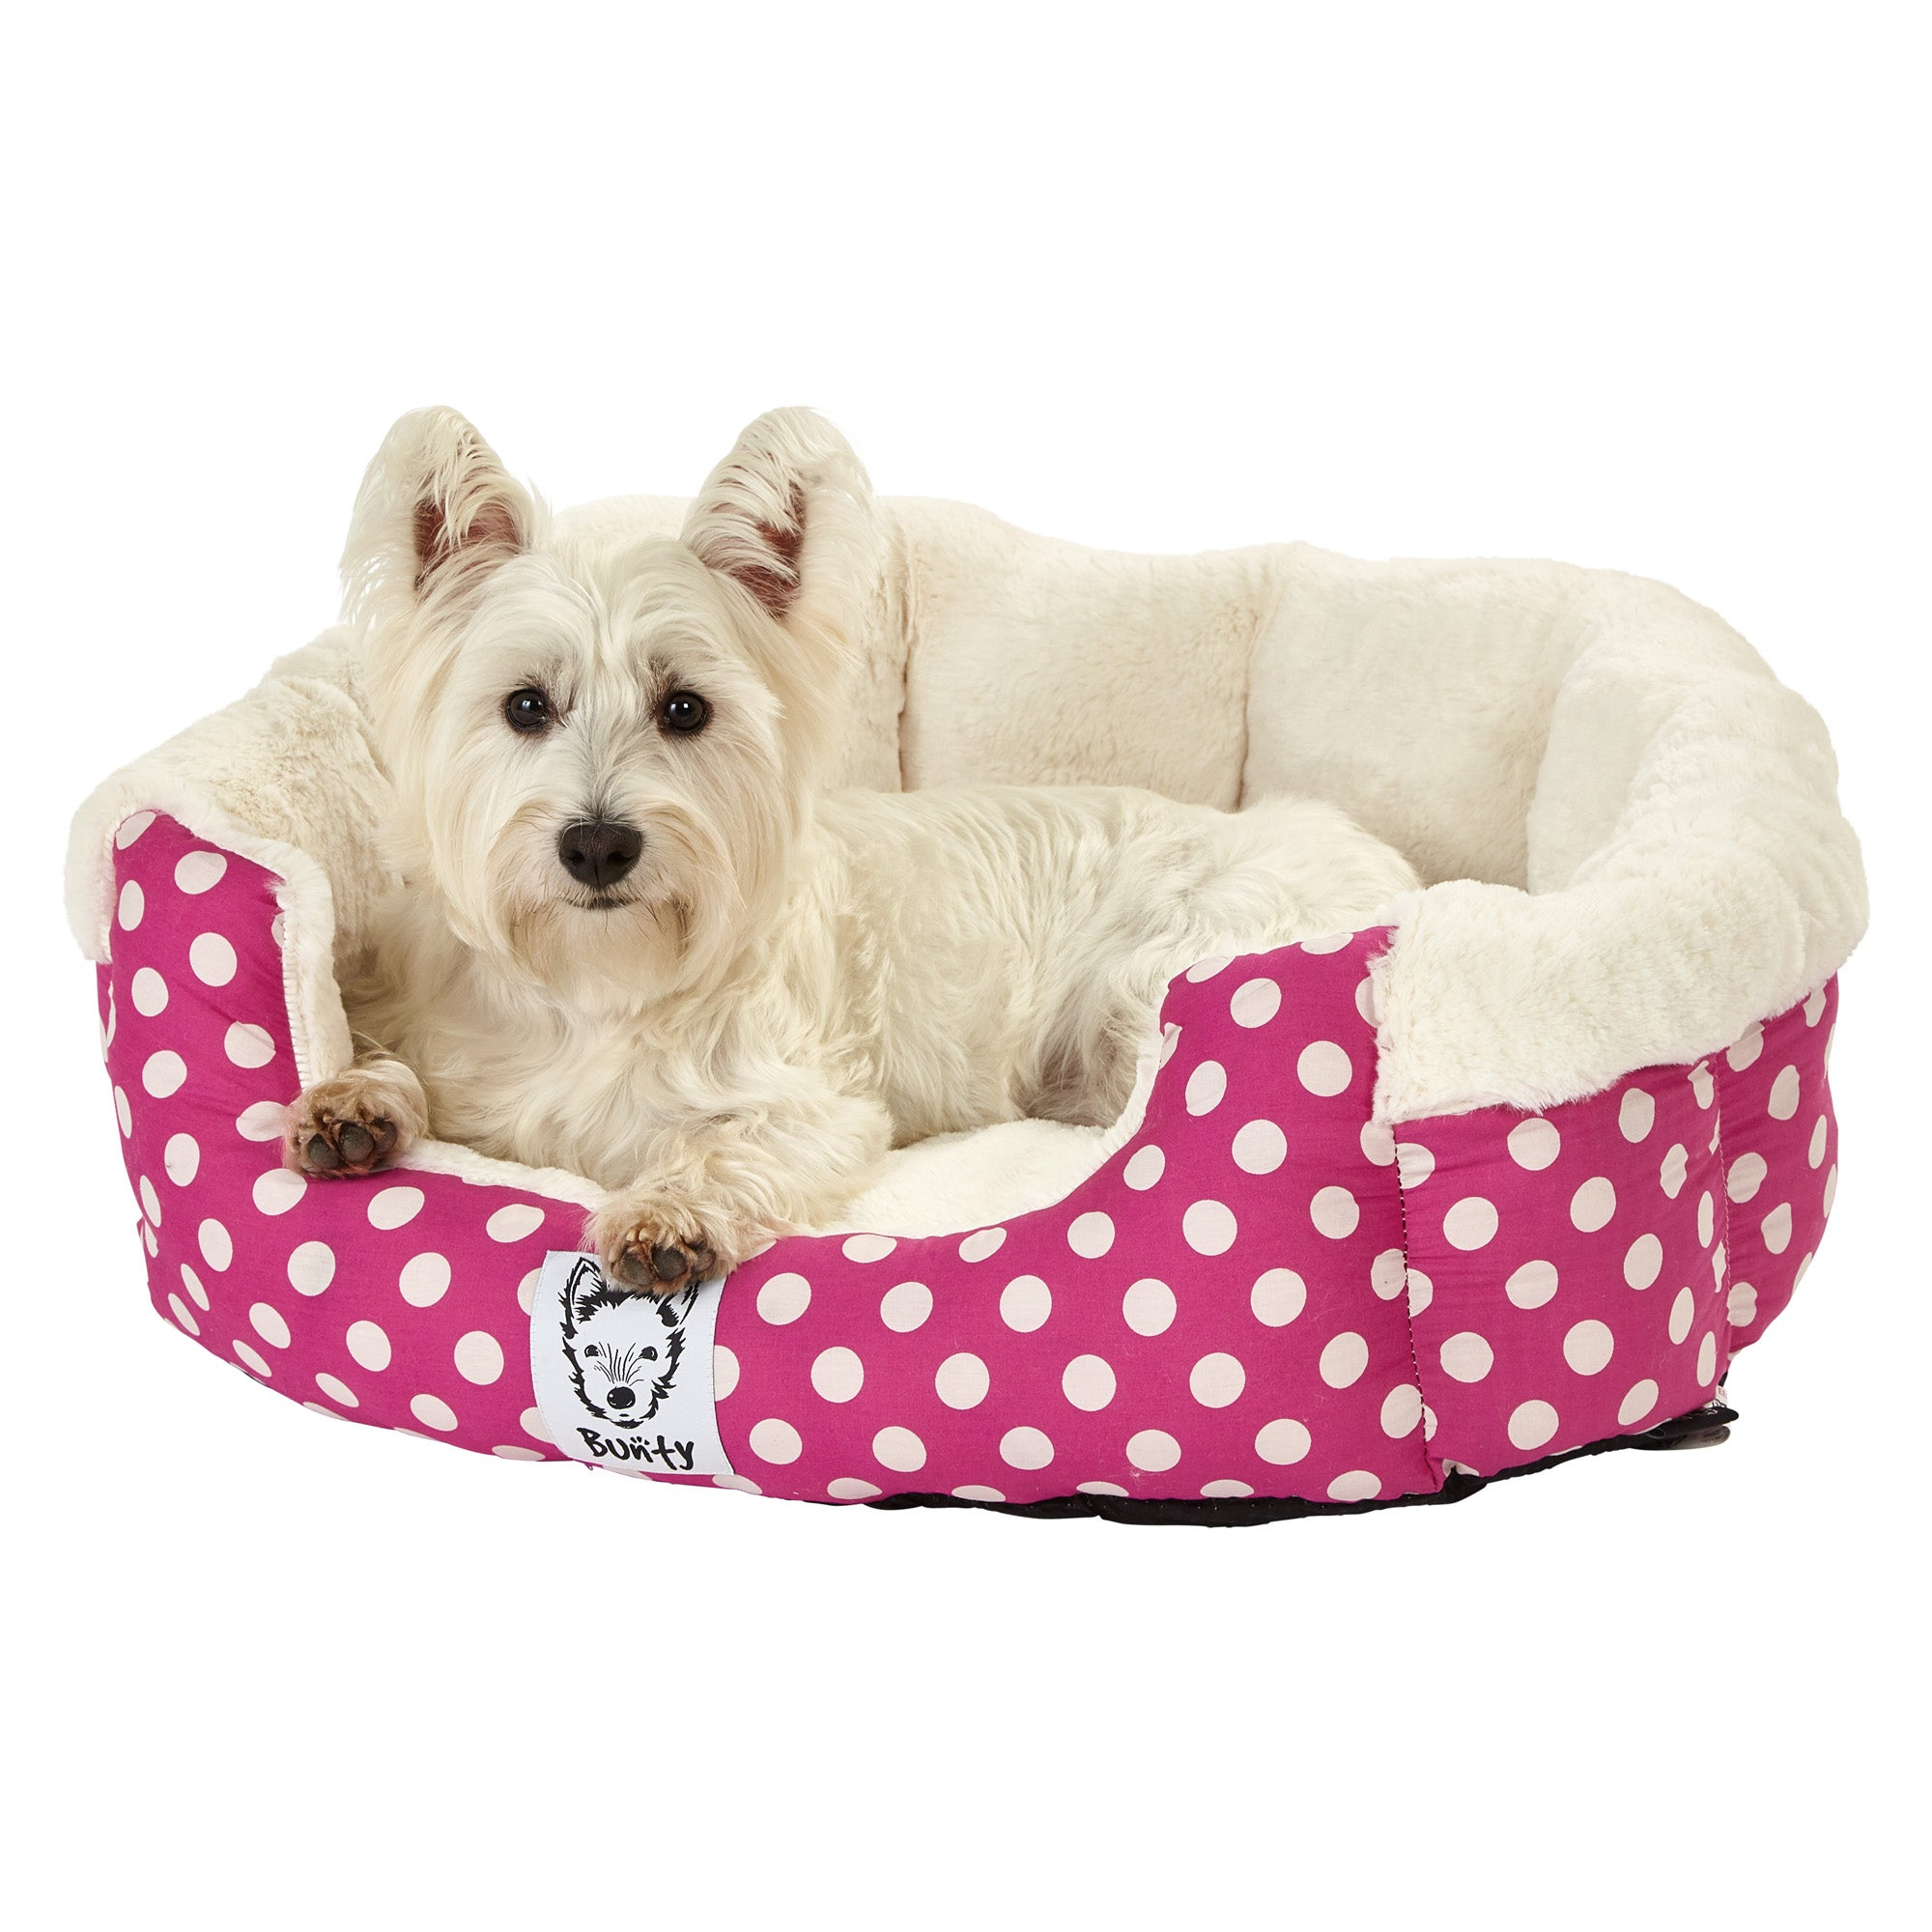 Bunty Pink Deep Dream Dog Bed Pink